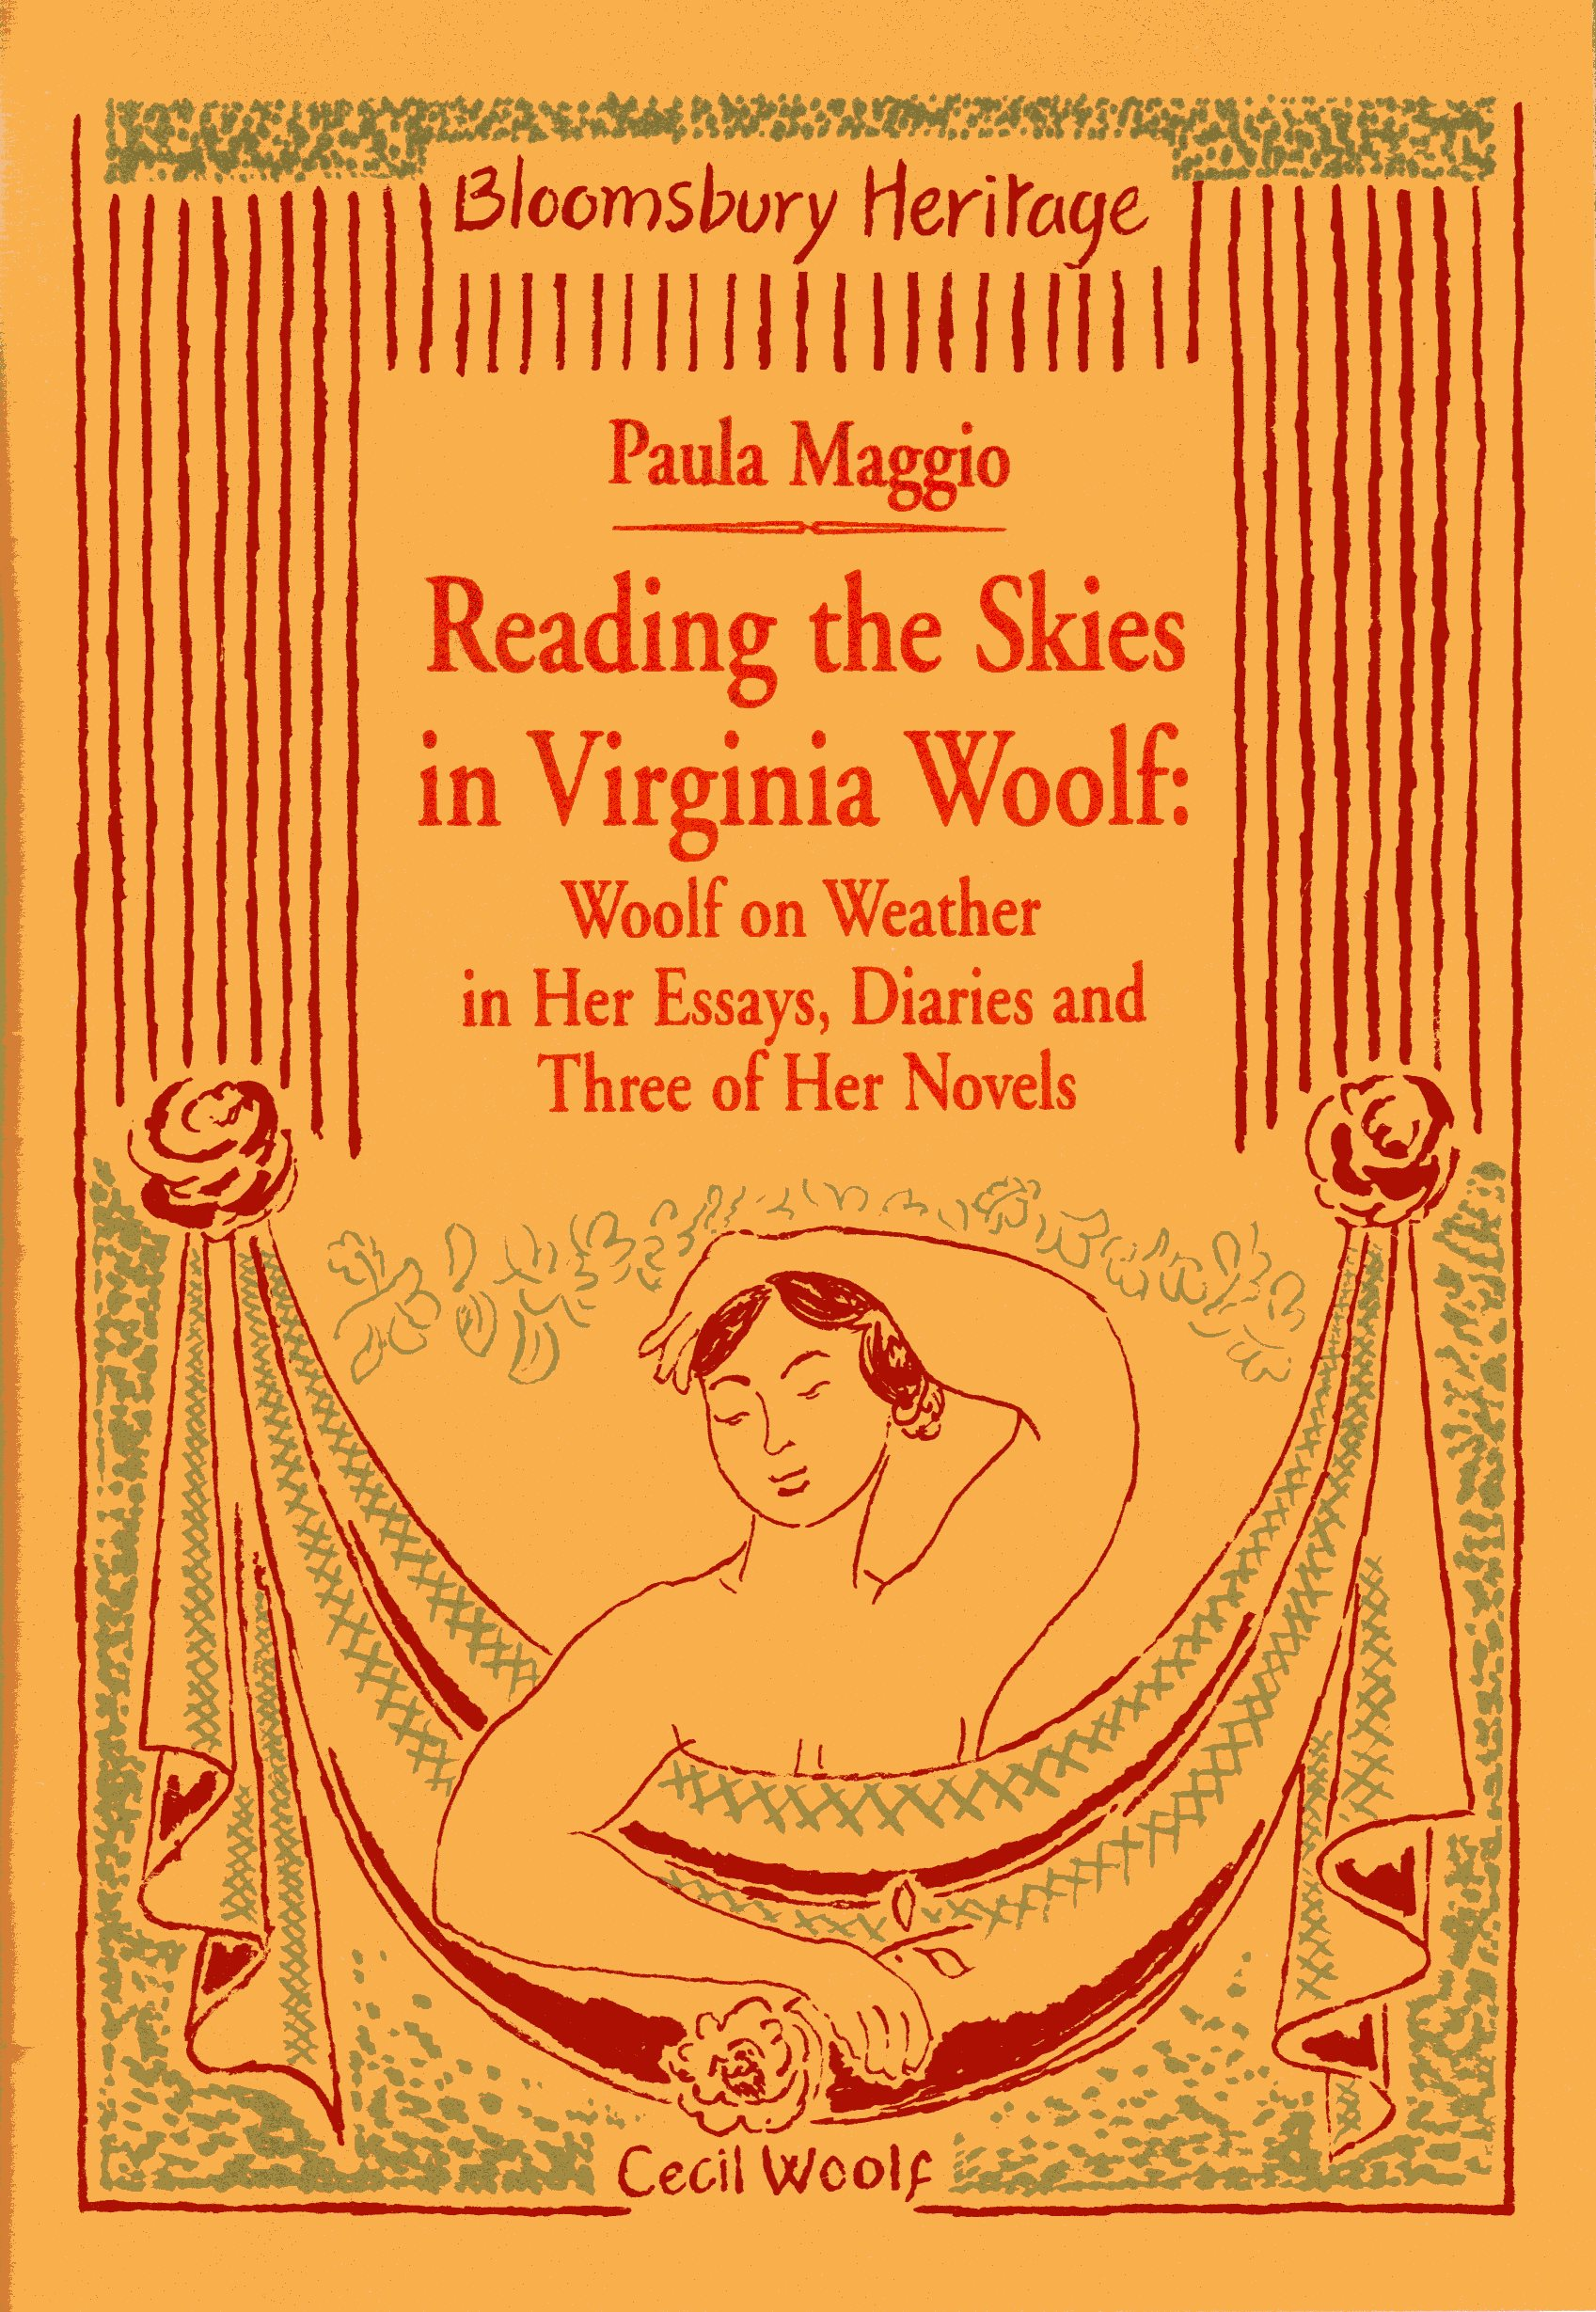 reading the skies woolf on weather blogging woolf reading the skies in virginia woolf woolf on weather in her essays her diaries and three of her novels